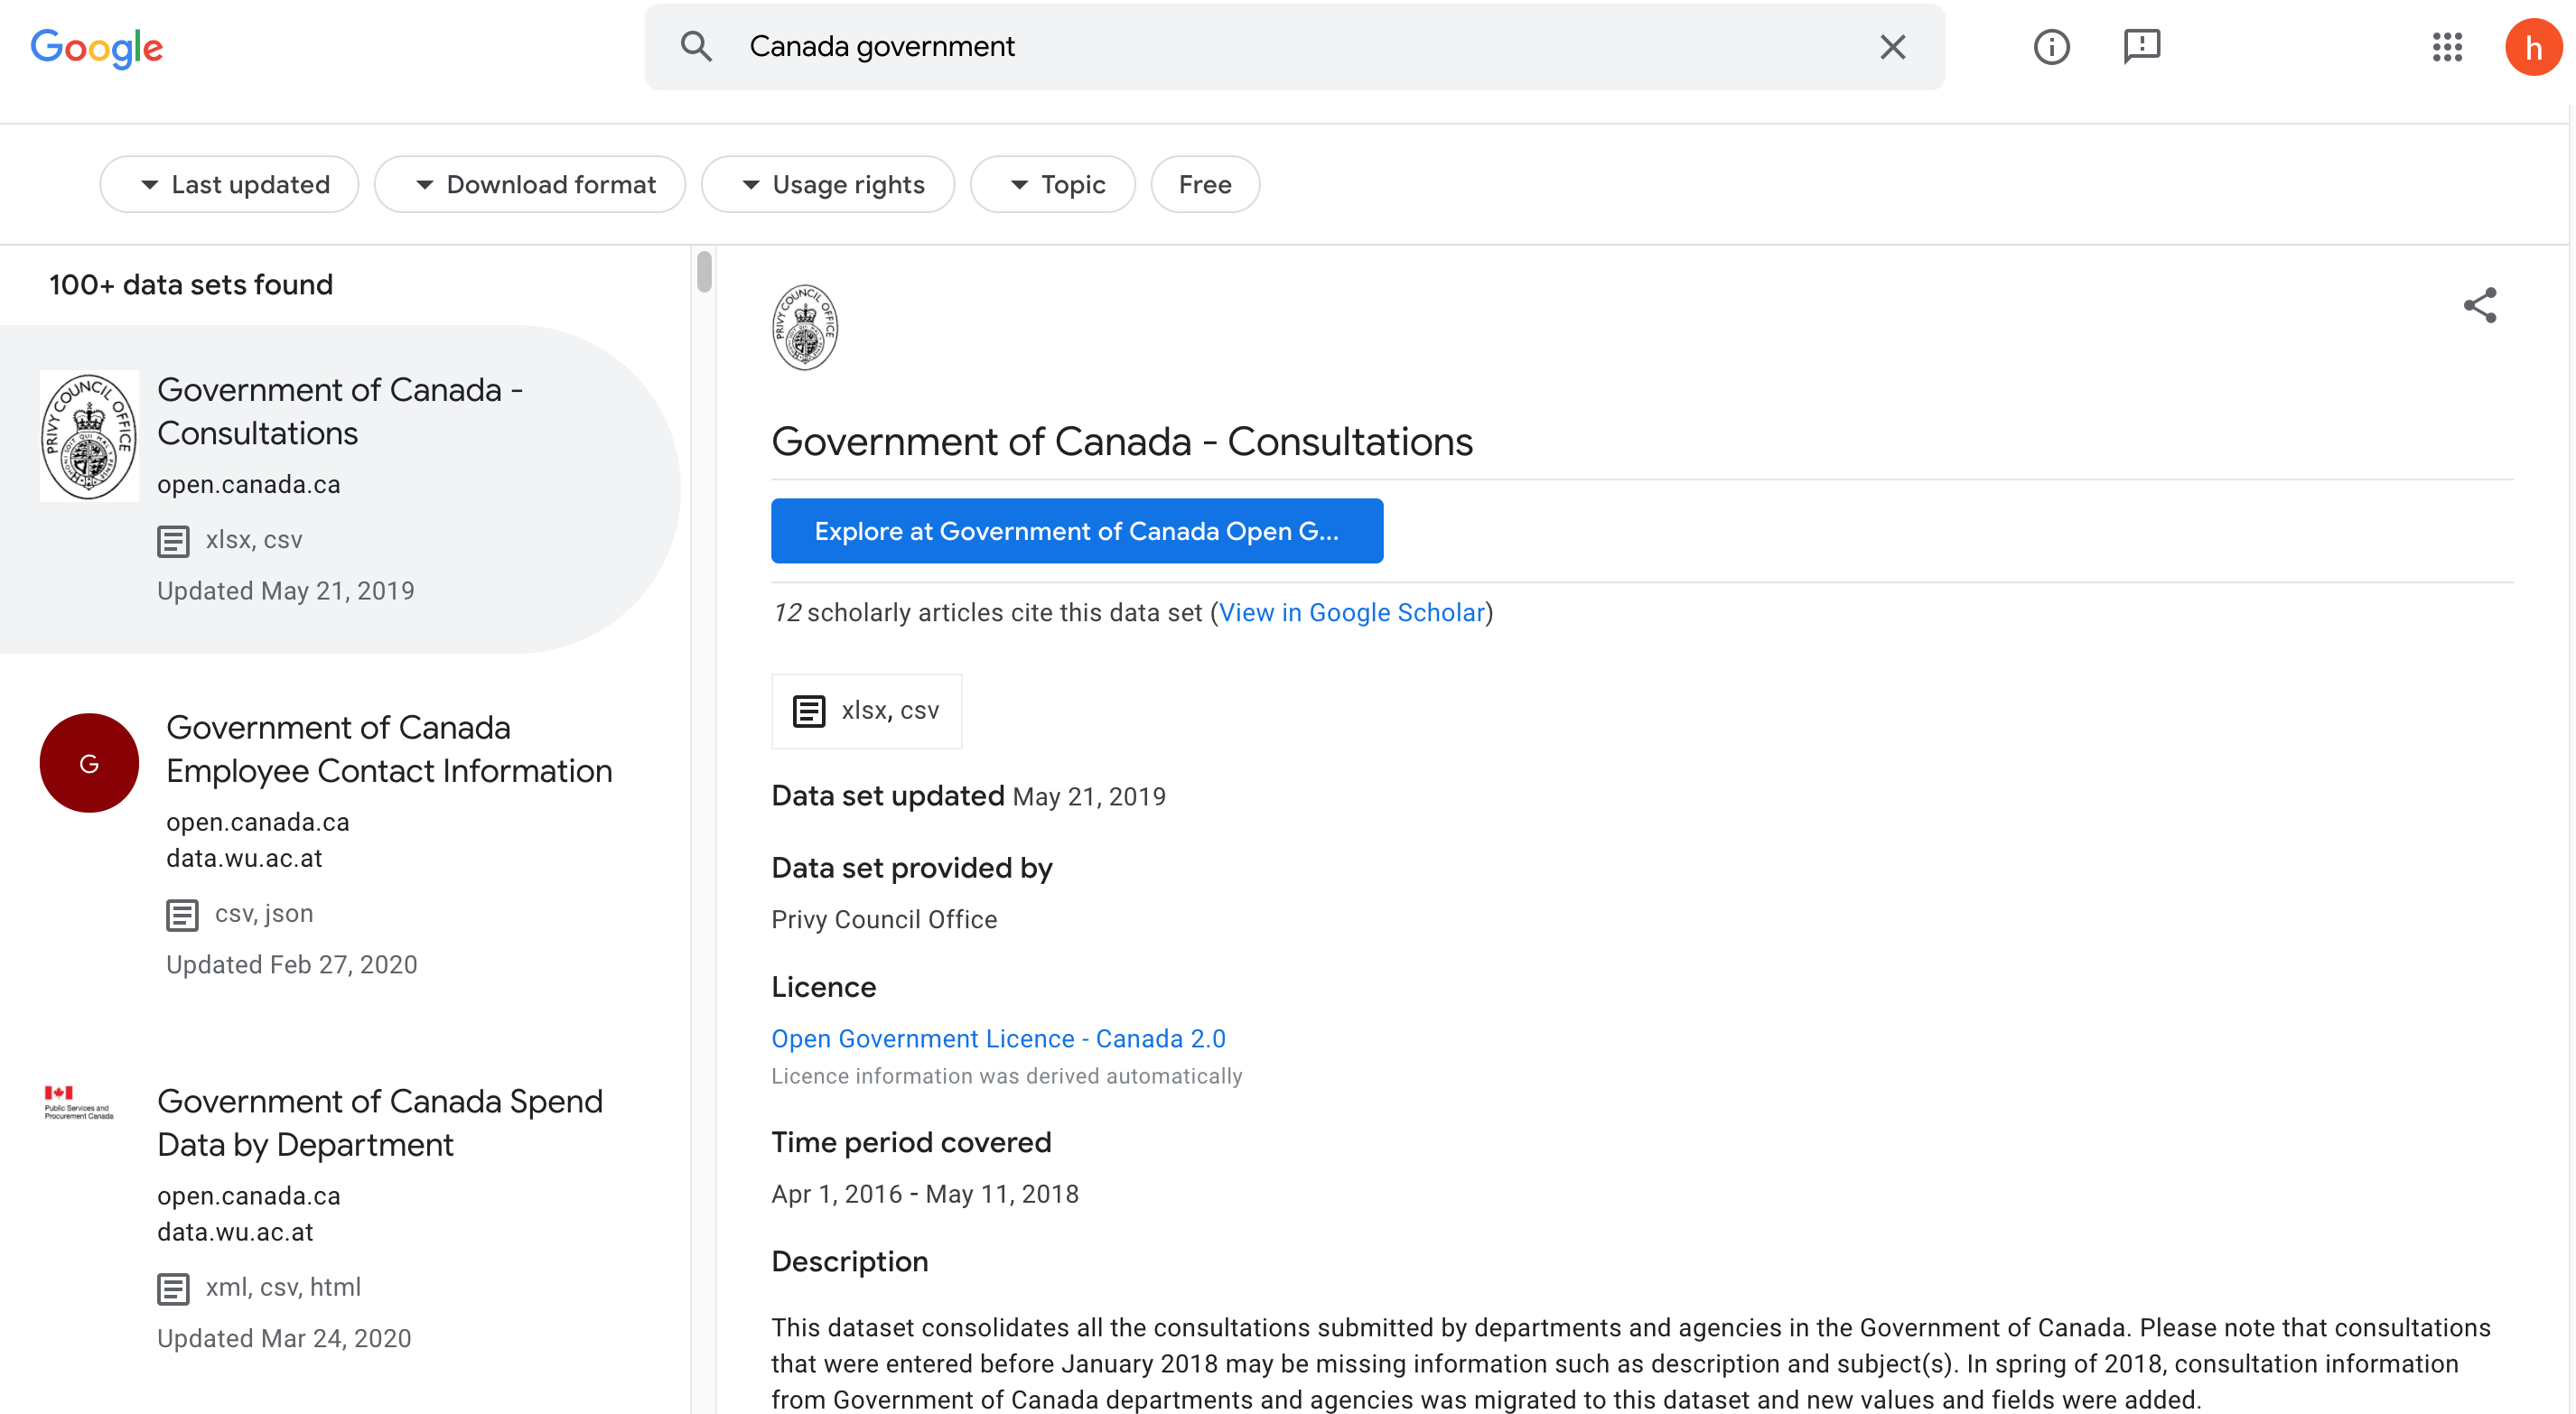 Google Dataset Canada government